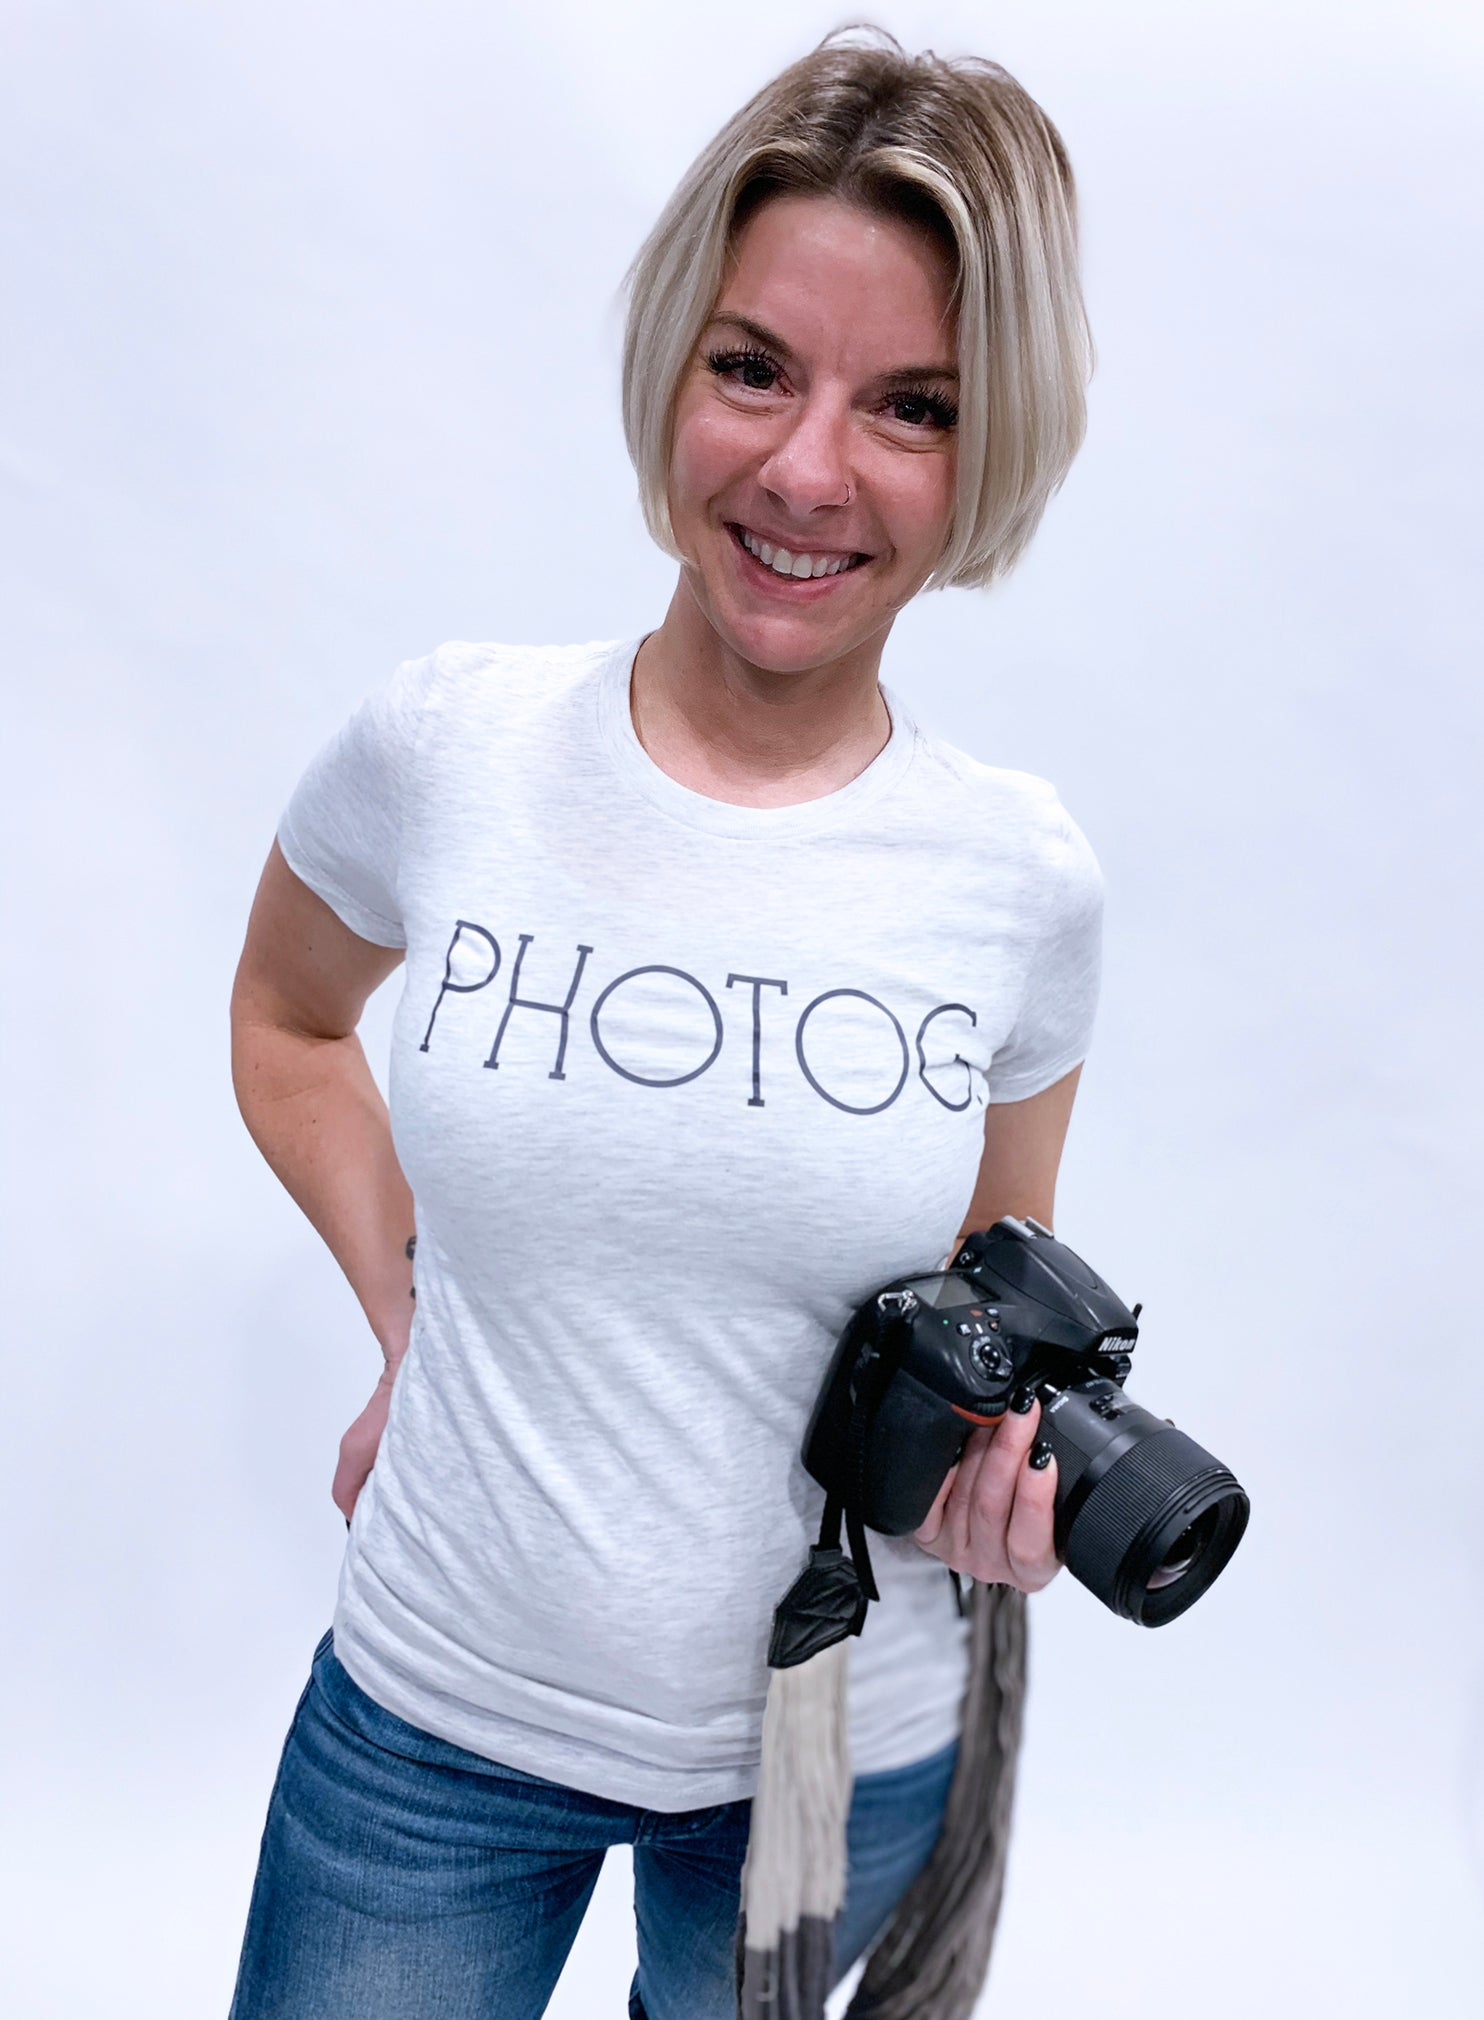 Photog Classic Fitted Tee